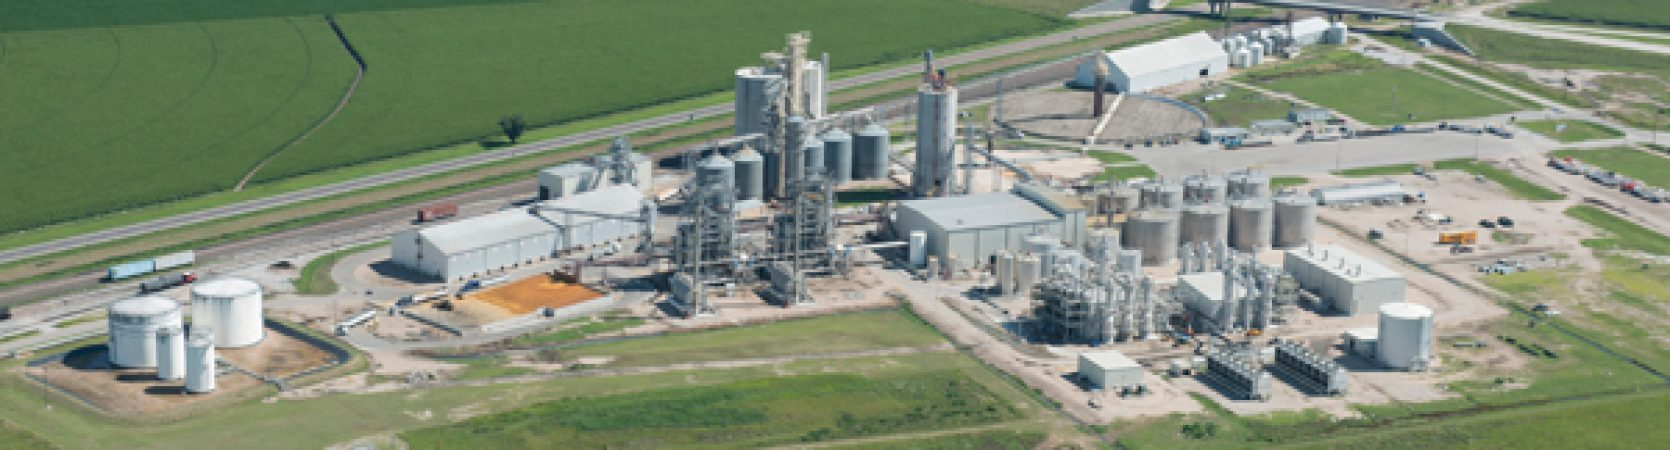 Green Plains Renewable Energy Wood River NE ethanol plant EAD structural engineering